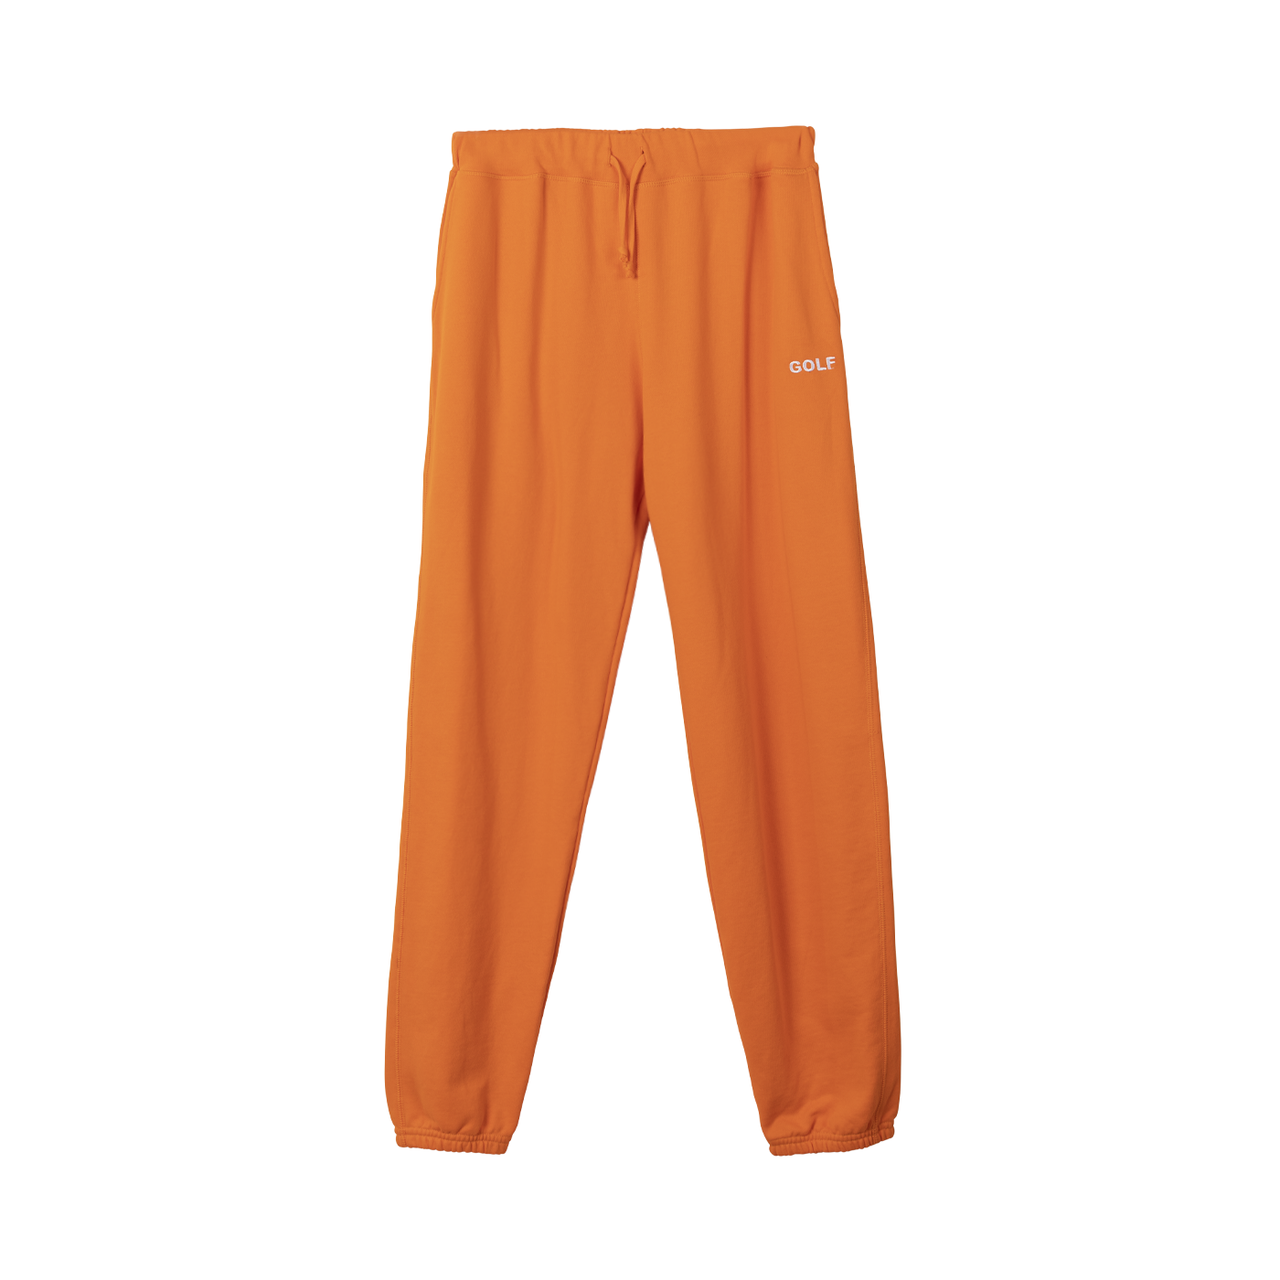 GOLF LOGO EMBROIDERED SWEATPANTS - ORANGE by GOLF WANG